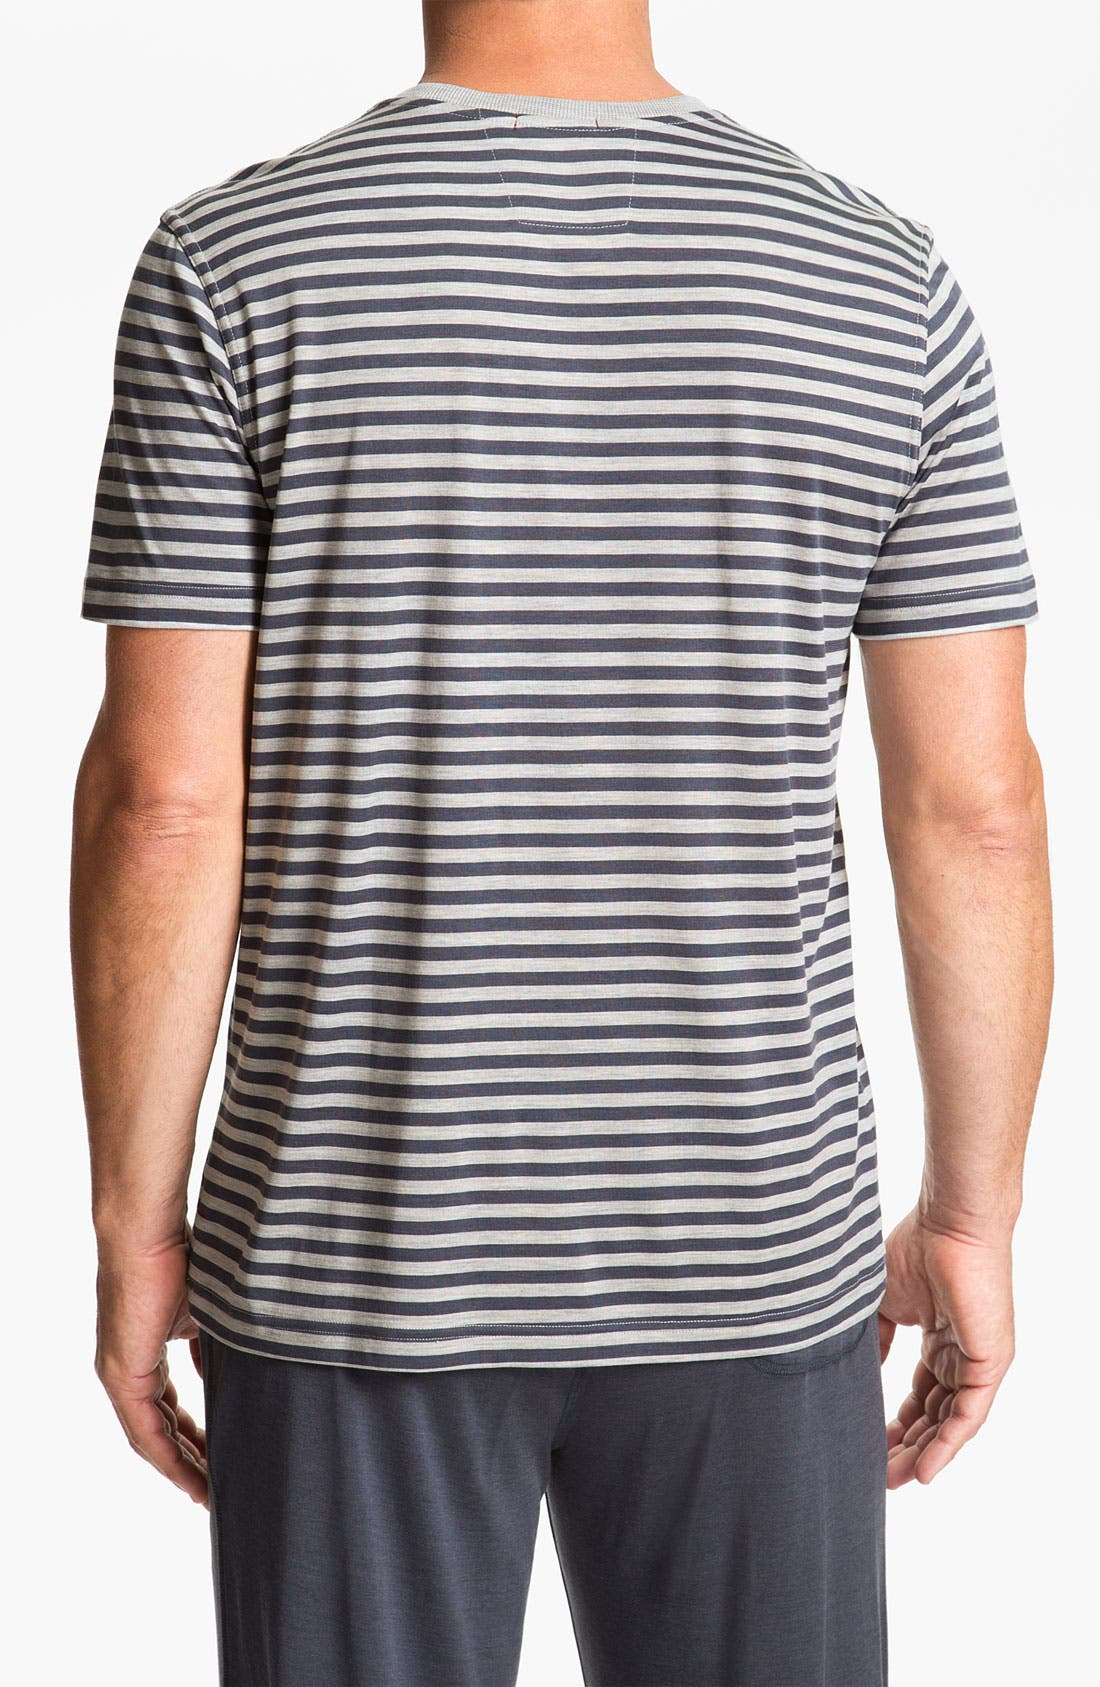 Alternate Image 2  - Daniel Buchler Silk Blend Heathered Stripe T-Shirt